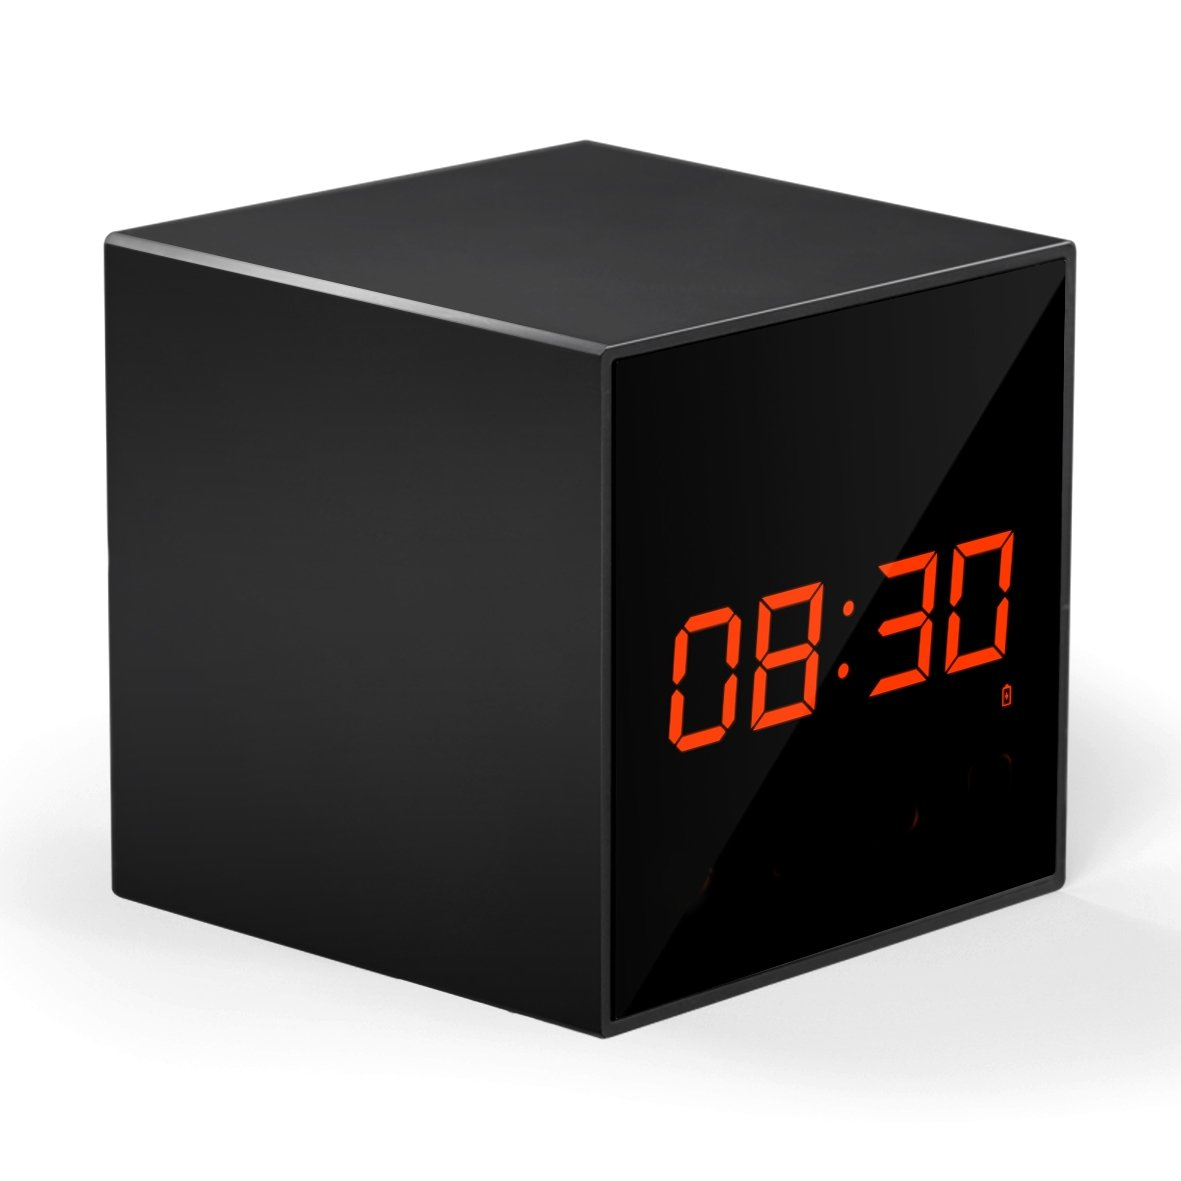 ProElite WL01 WiFi Enabled Clock with Hidden Camera & SD